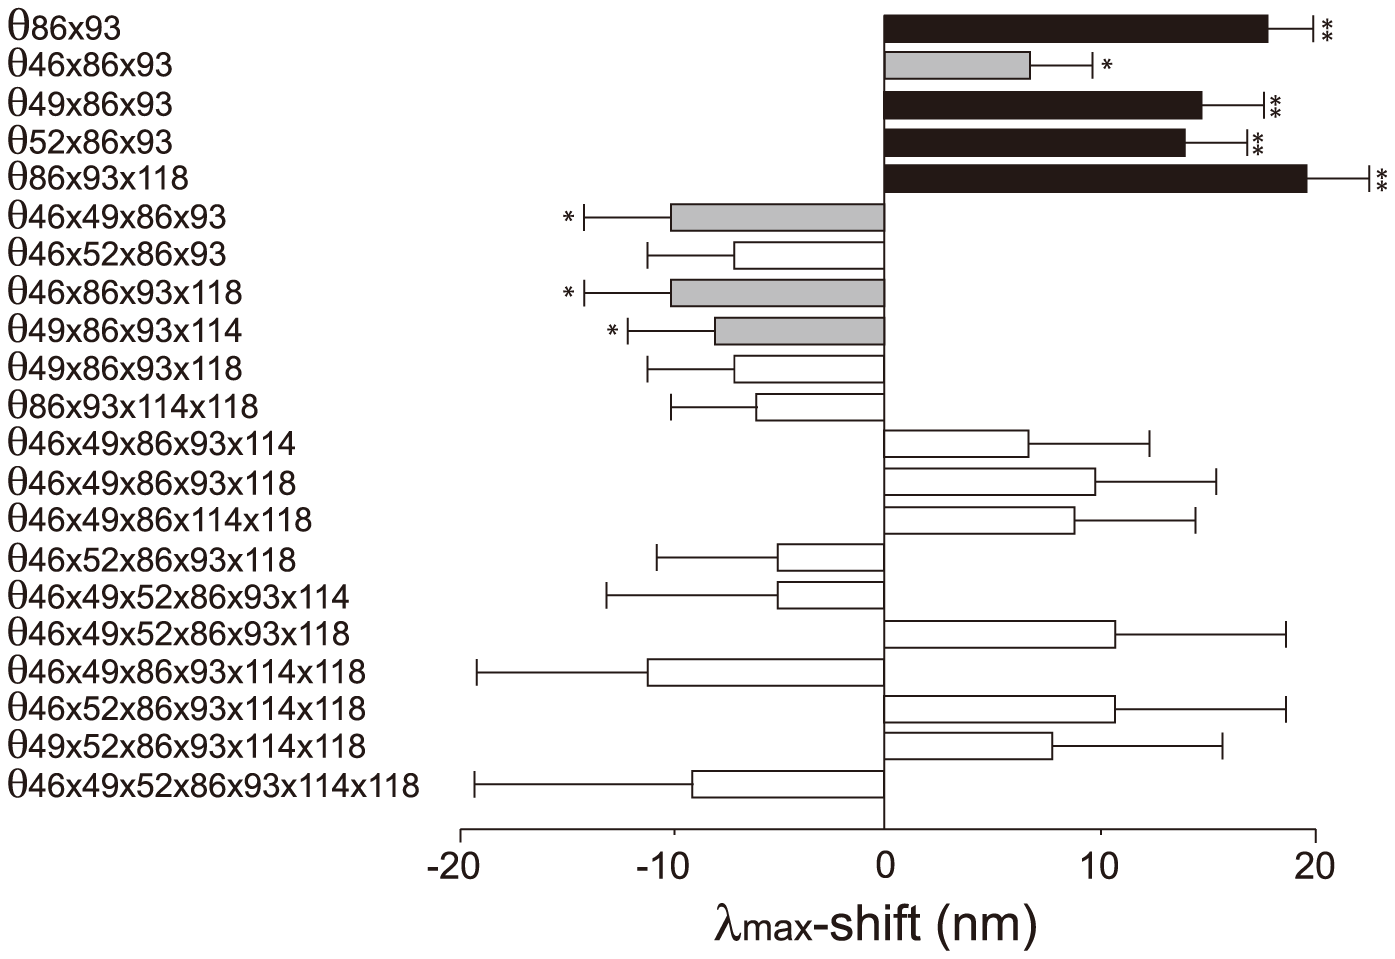 The θ values ( θ >5 nm) that are generated by epistasis in AncBoreotheria S1.